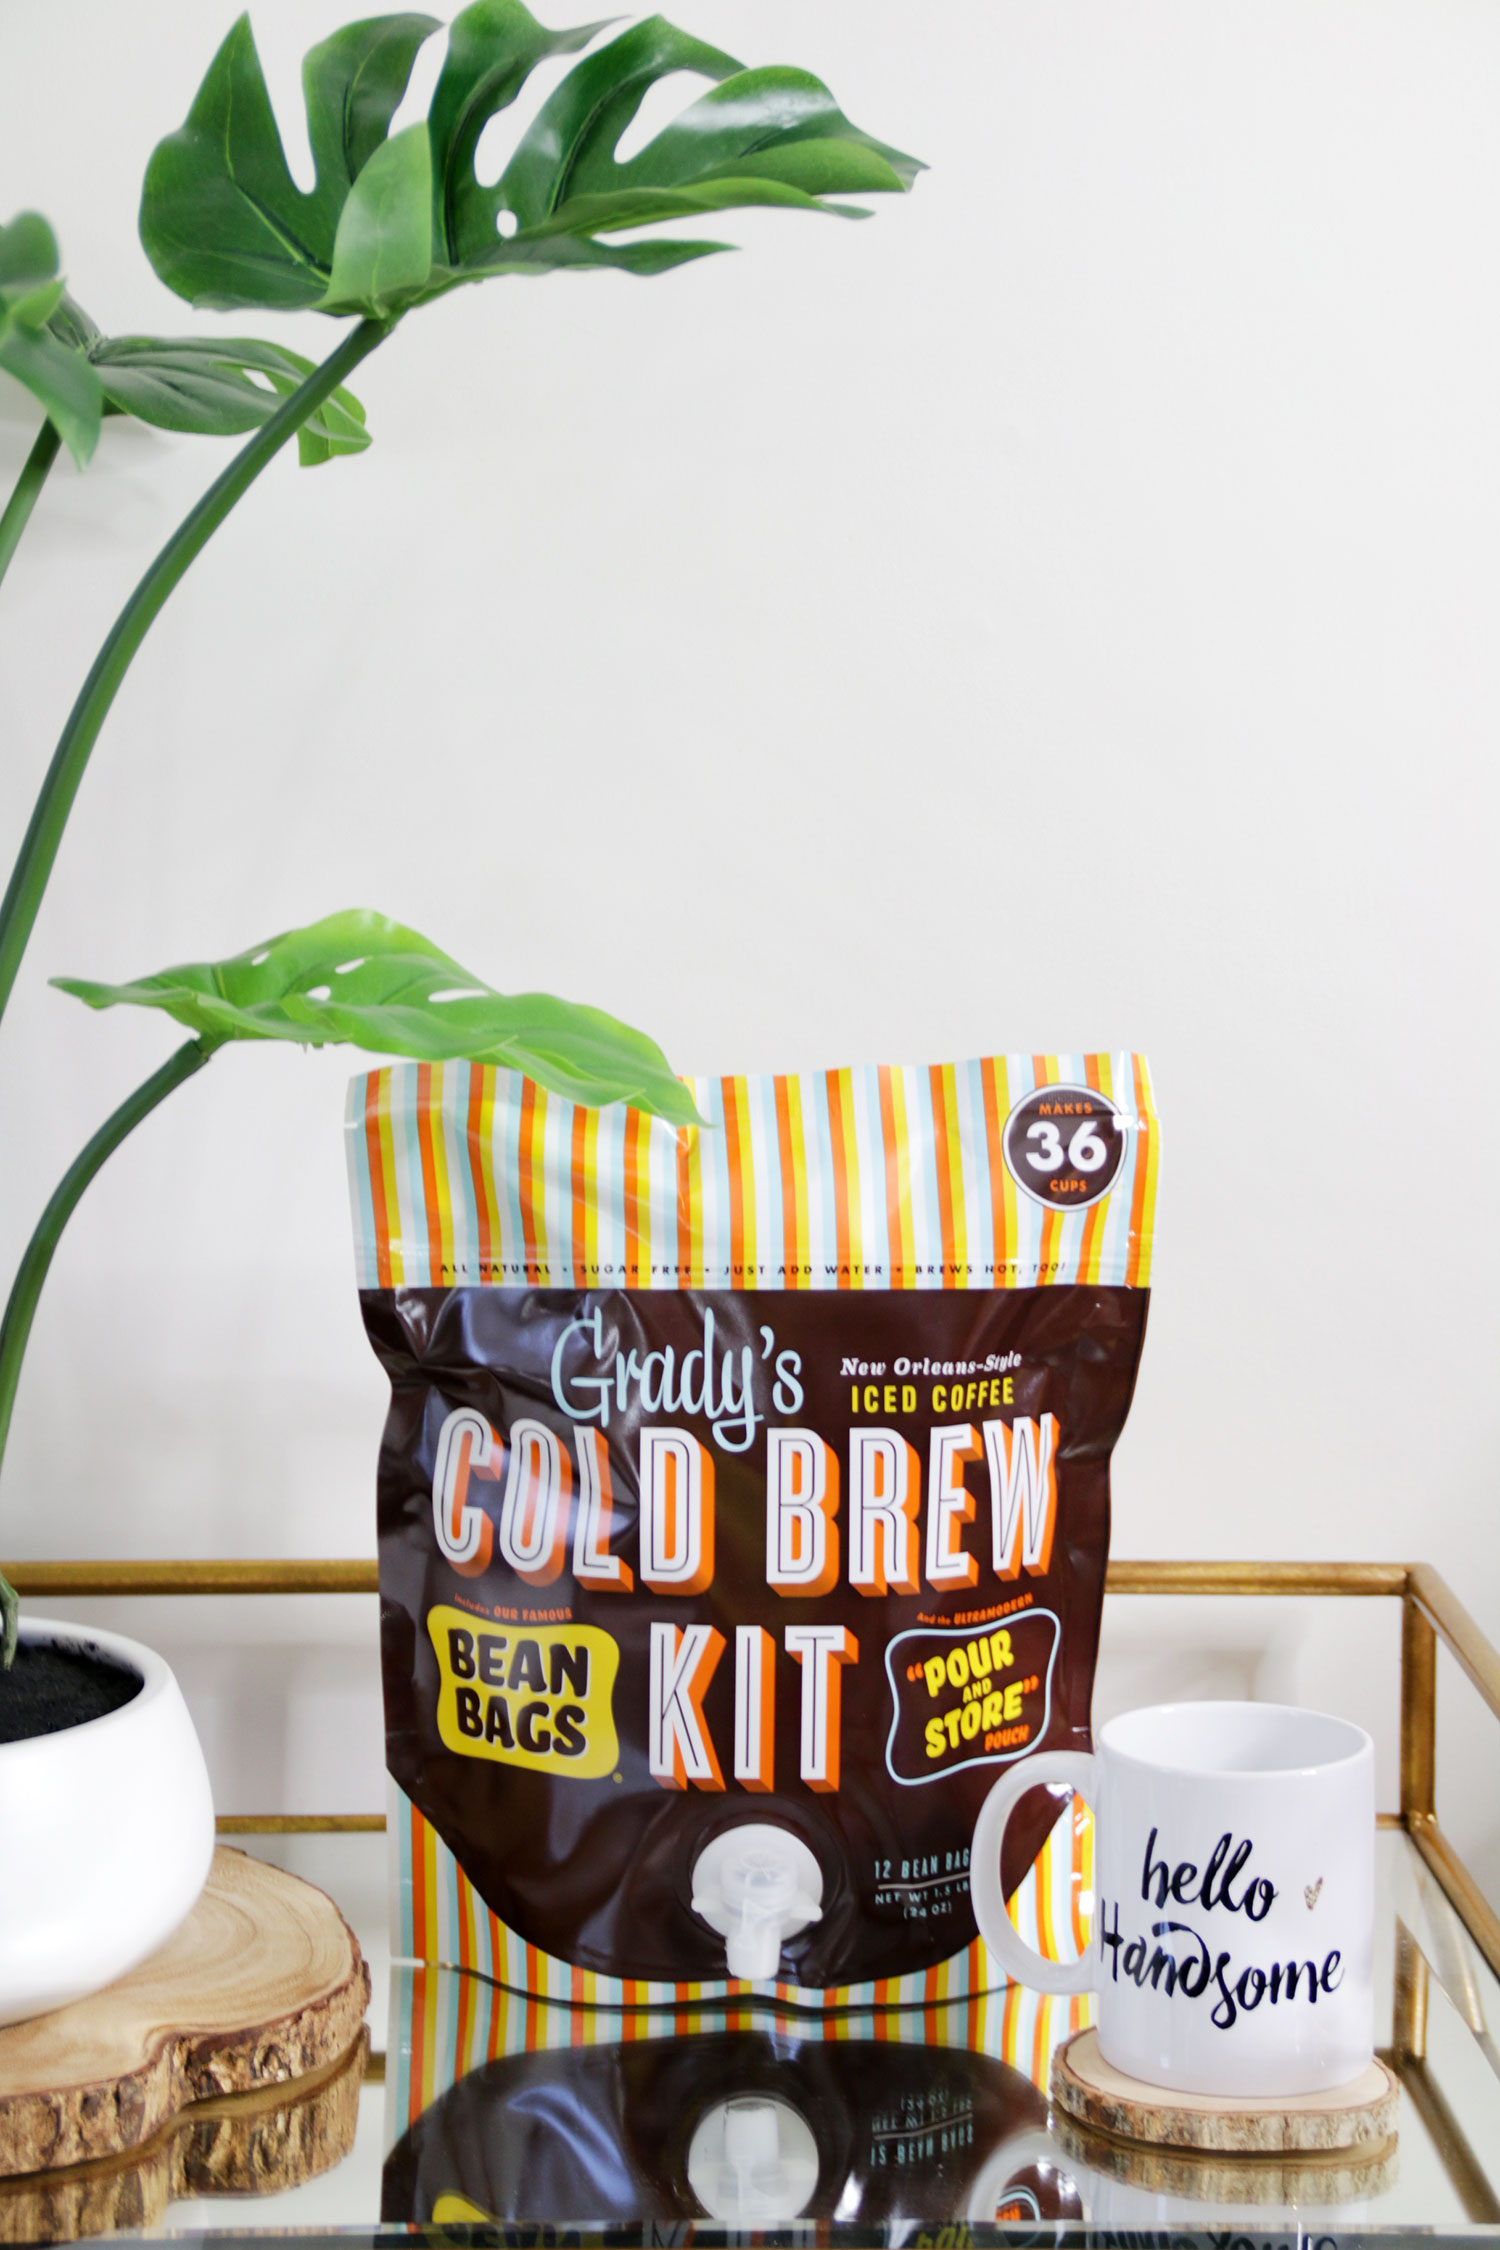 Grady's Cold Brew - Bean Bag Cold Brew Kit